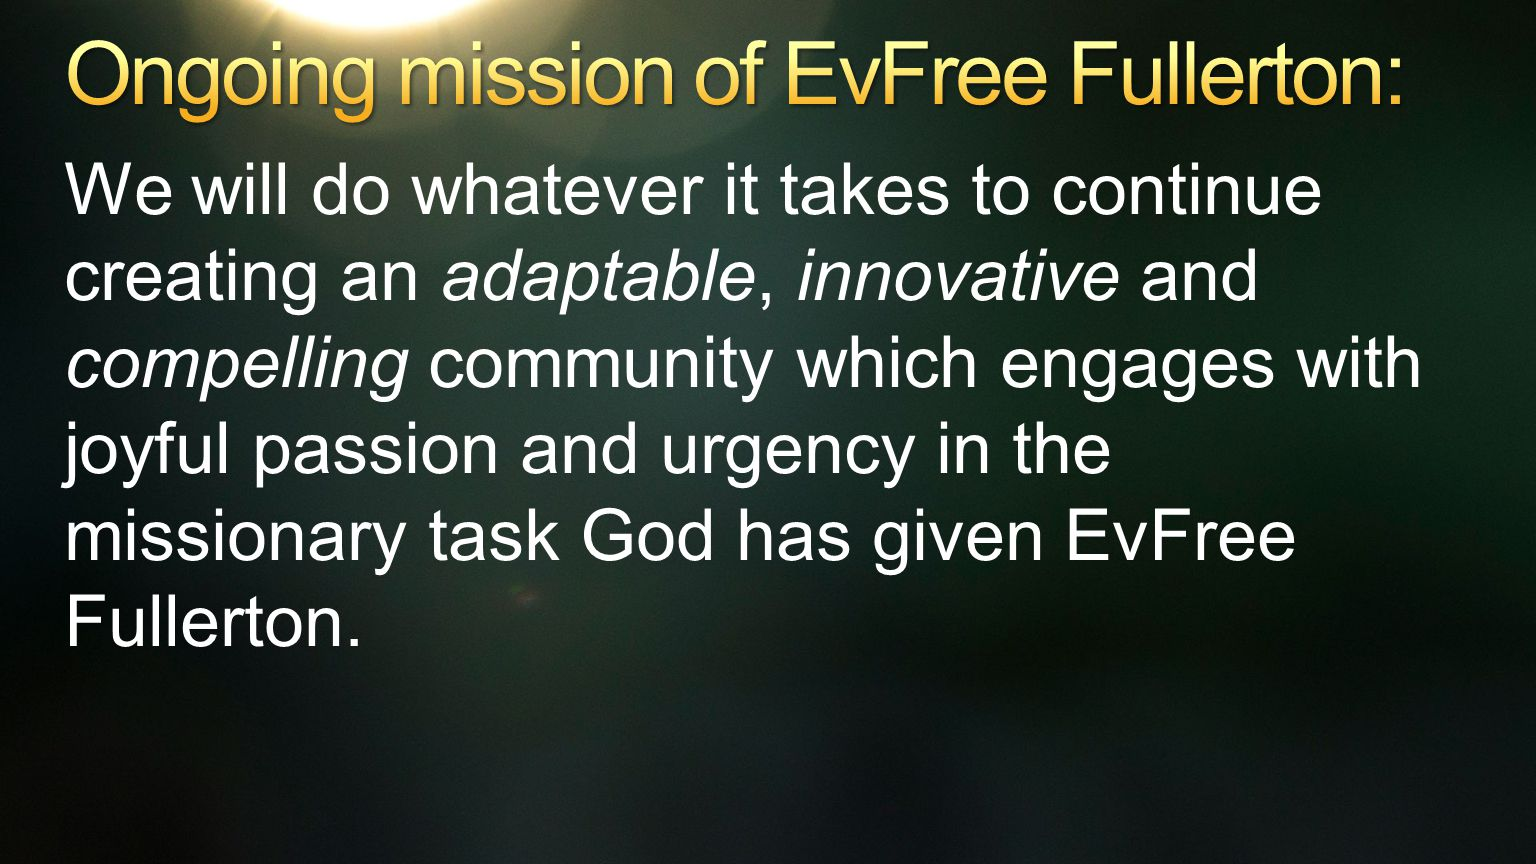 We will do whatever it takes to continue creating an adaptable, innovative and compelling community which engages with joyful passion and urgency in the missionary task God has given EvFree Fullerton.